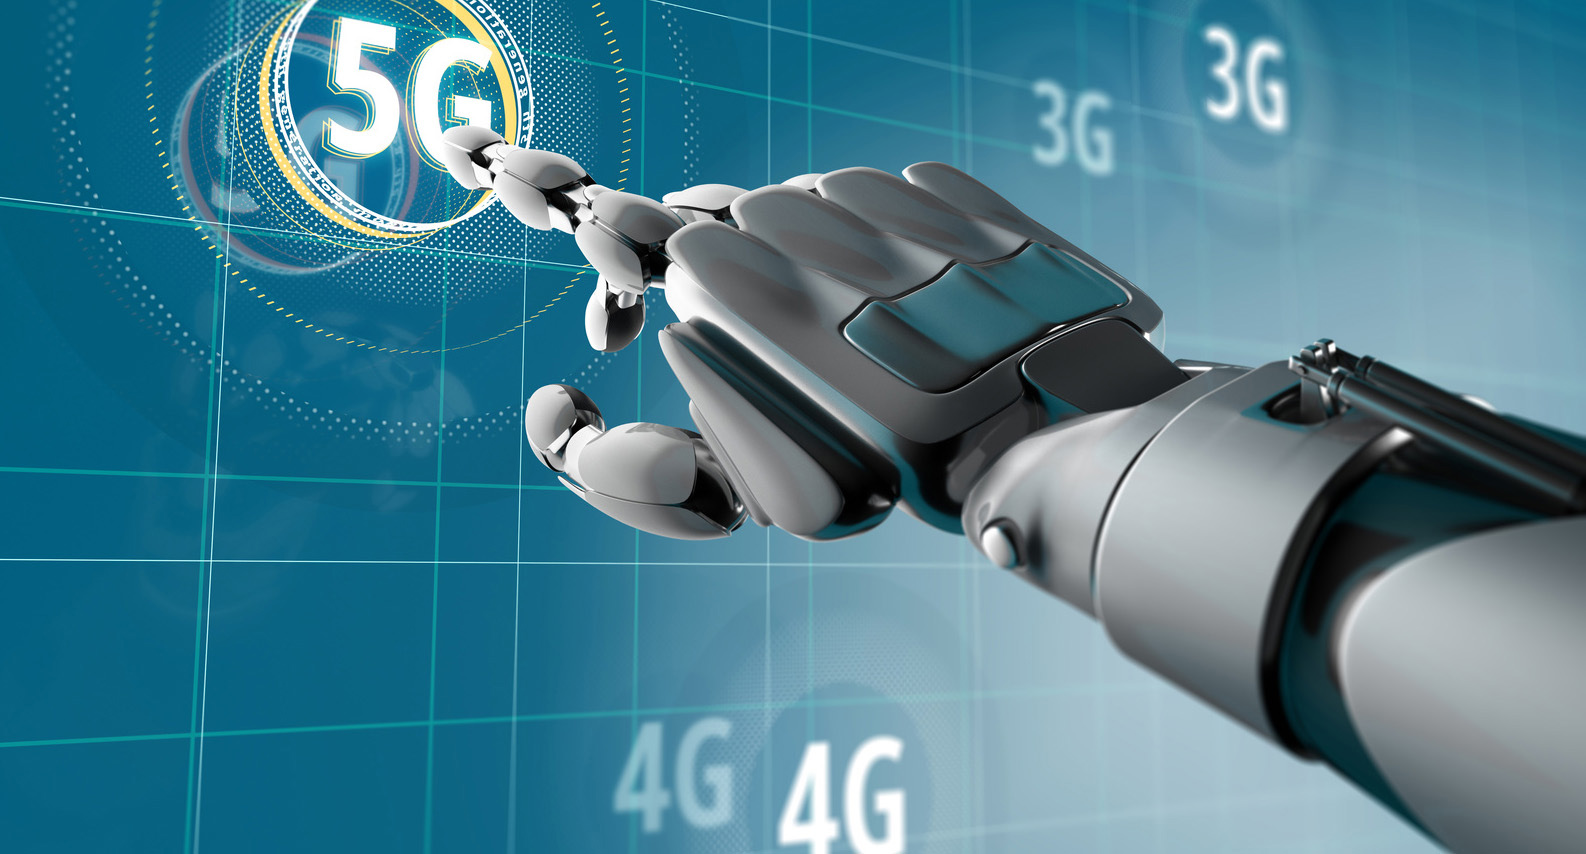 The Future of 5G is Now | Robotic hand points to a lit-up 5G symbol